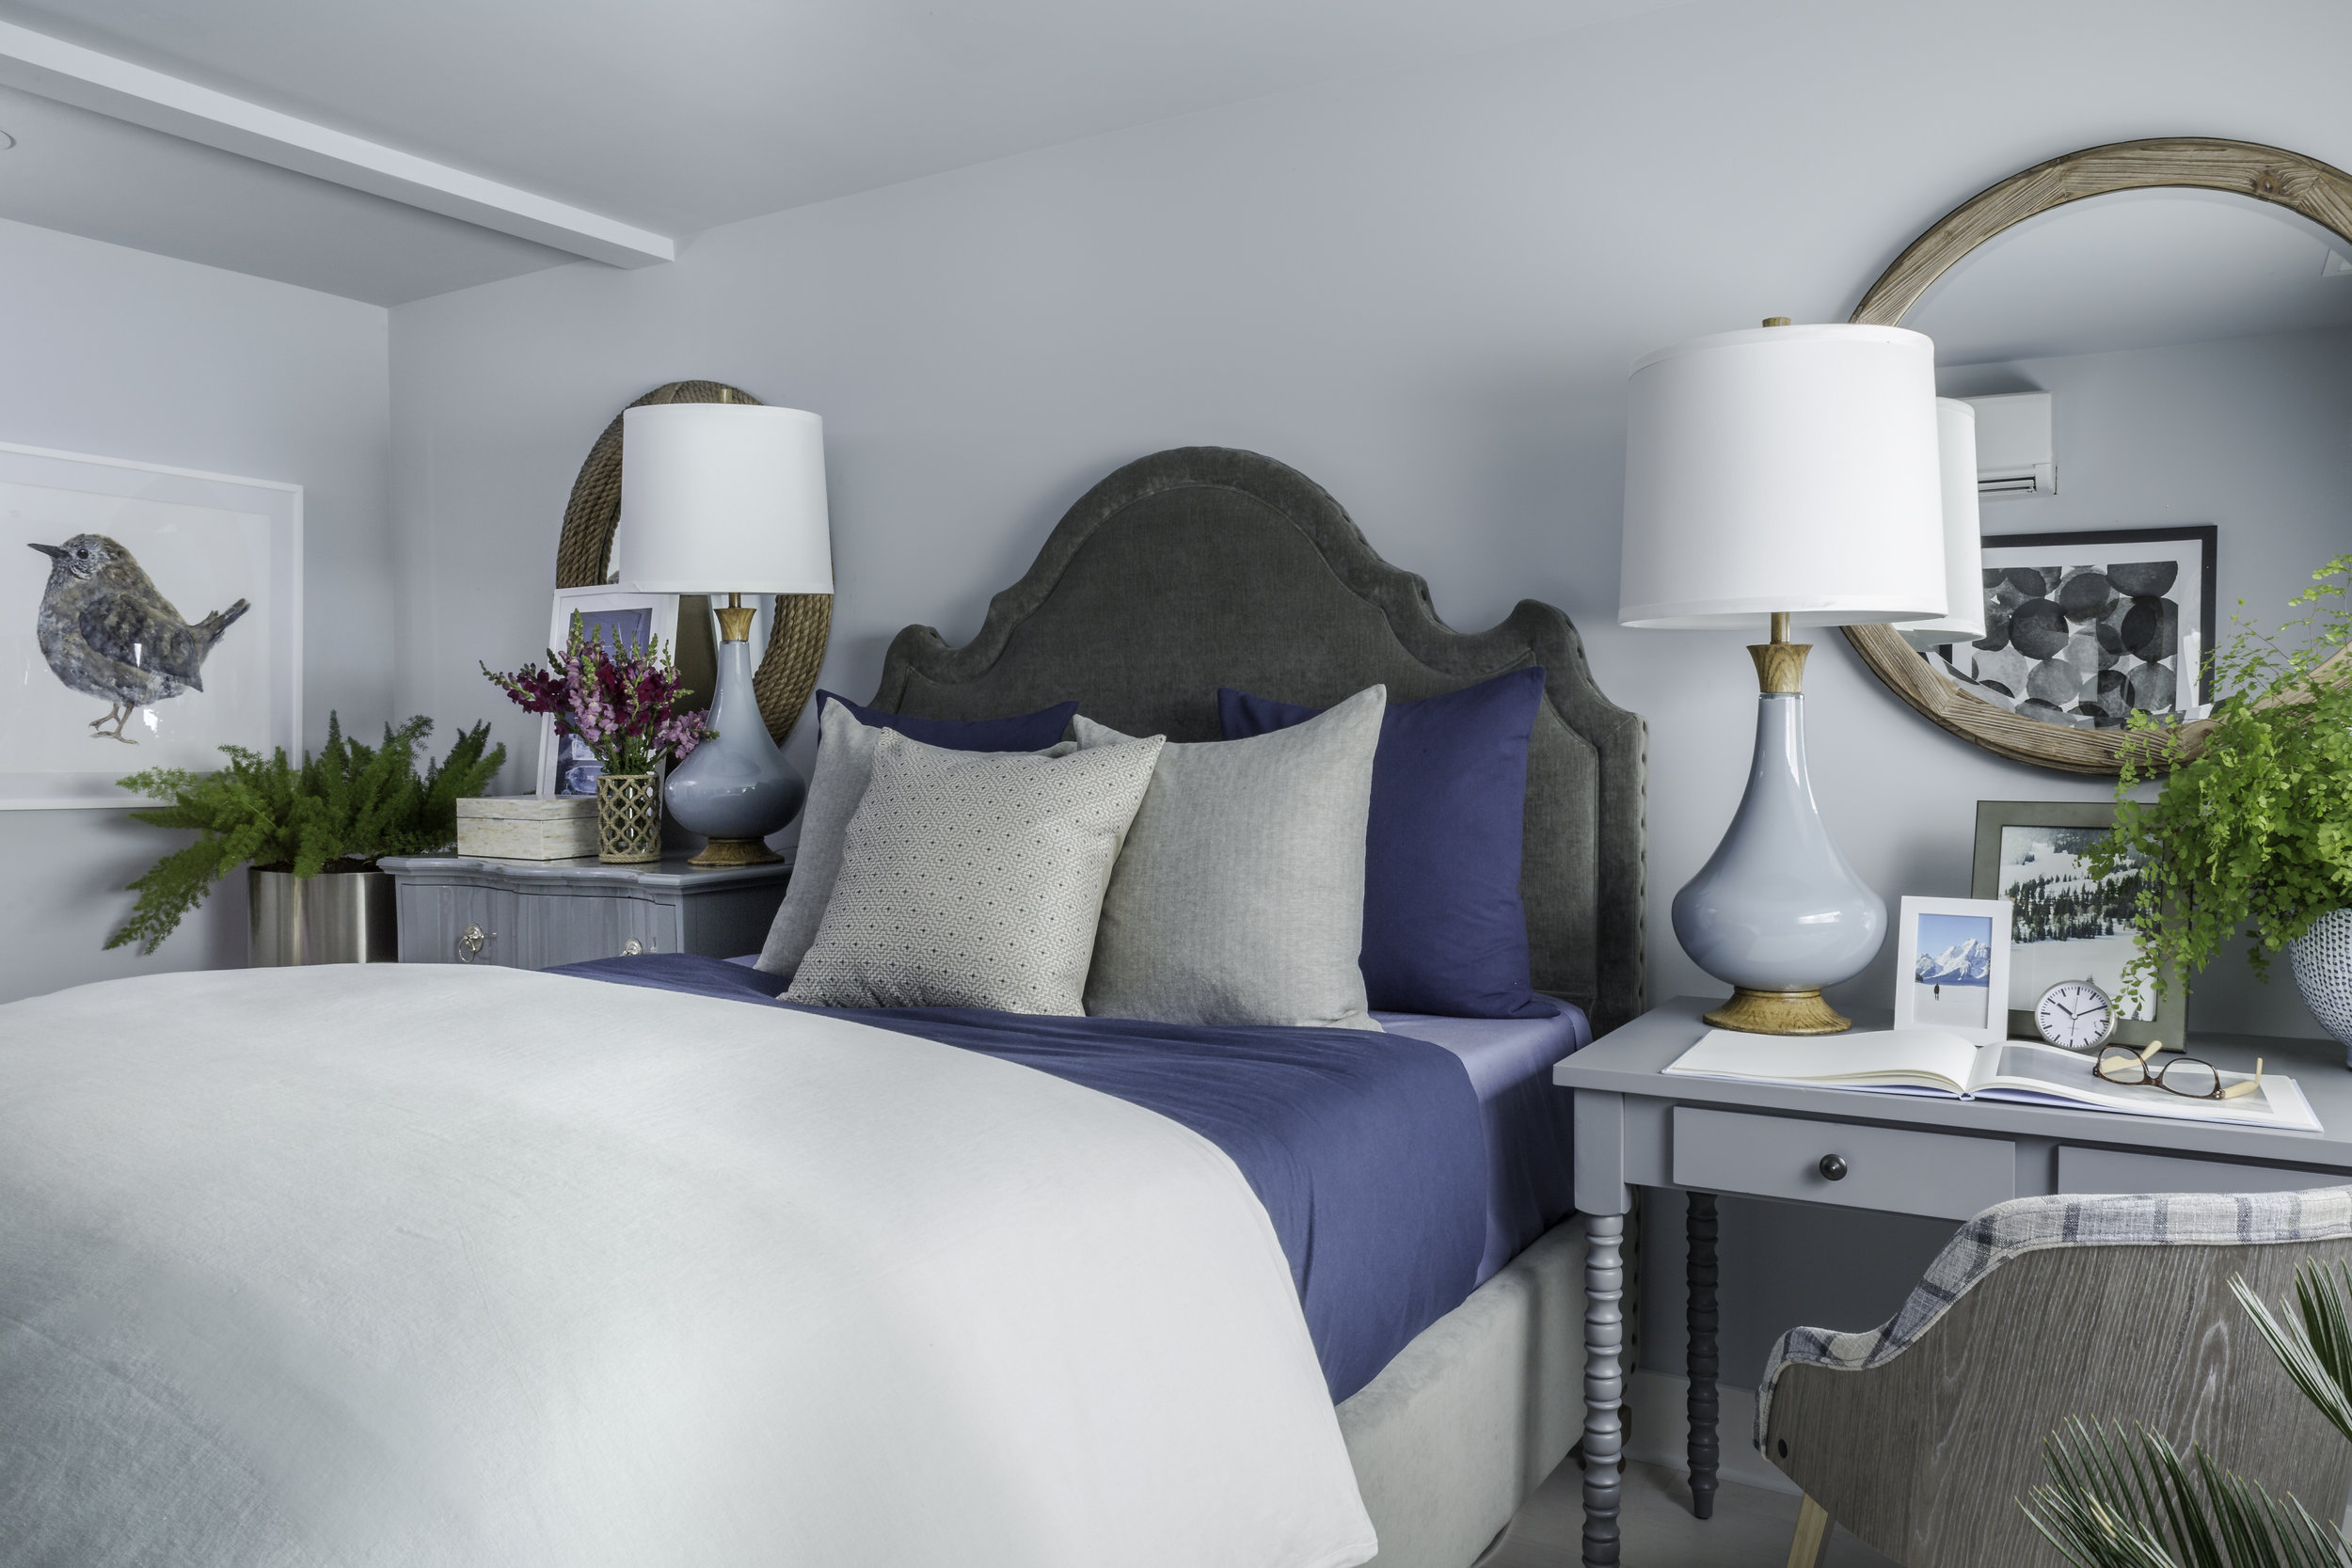 HGTV Dream Home 2018 - Blue and Gray Guest Bedroom.jpg